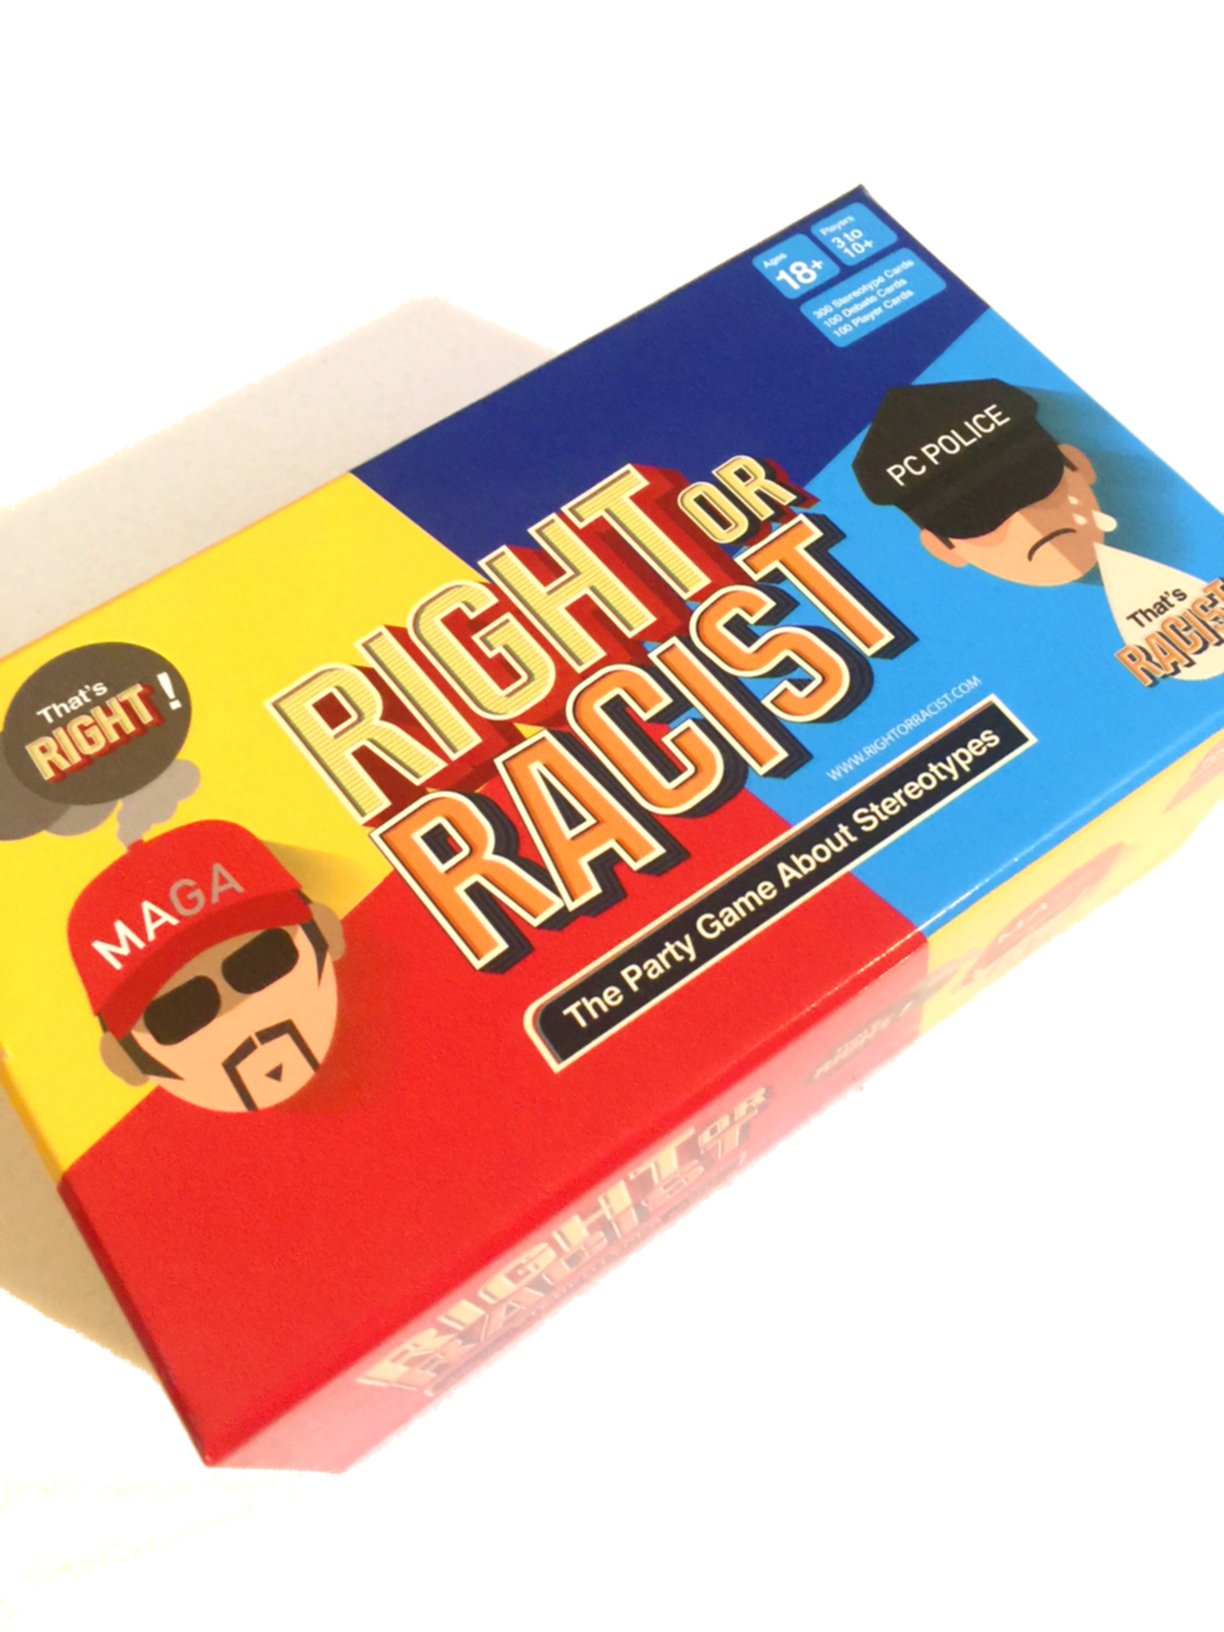 Right Or Racist – Funny Adult Party Game – Hilarious Drinking NSFW Game – Gag Gifts – Birthday Gifts For Men – Women